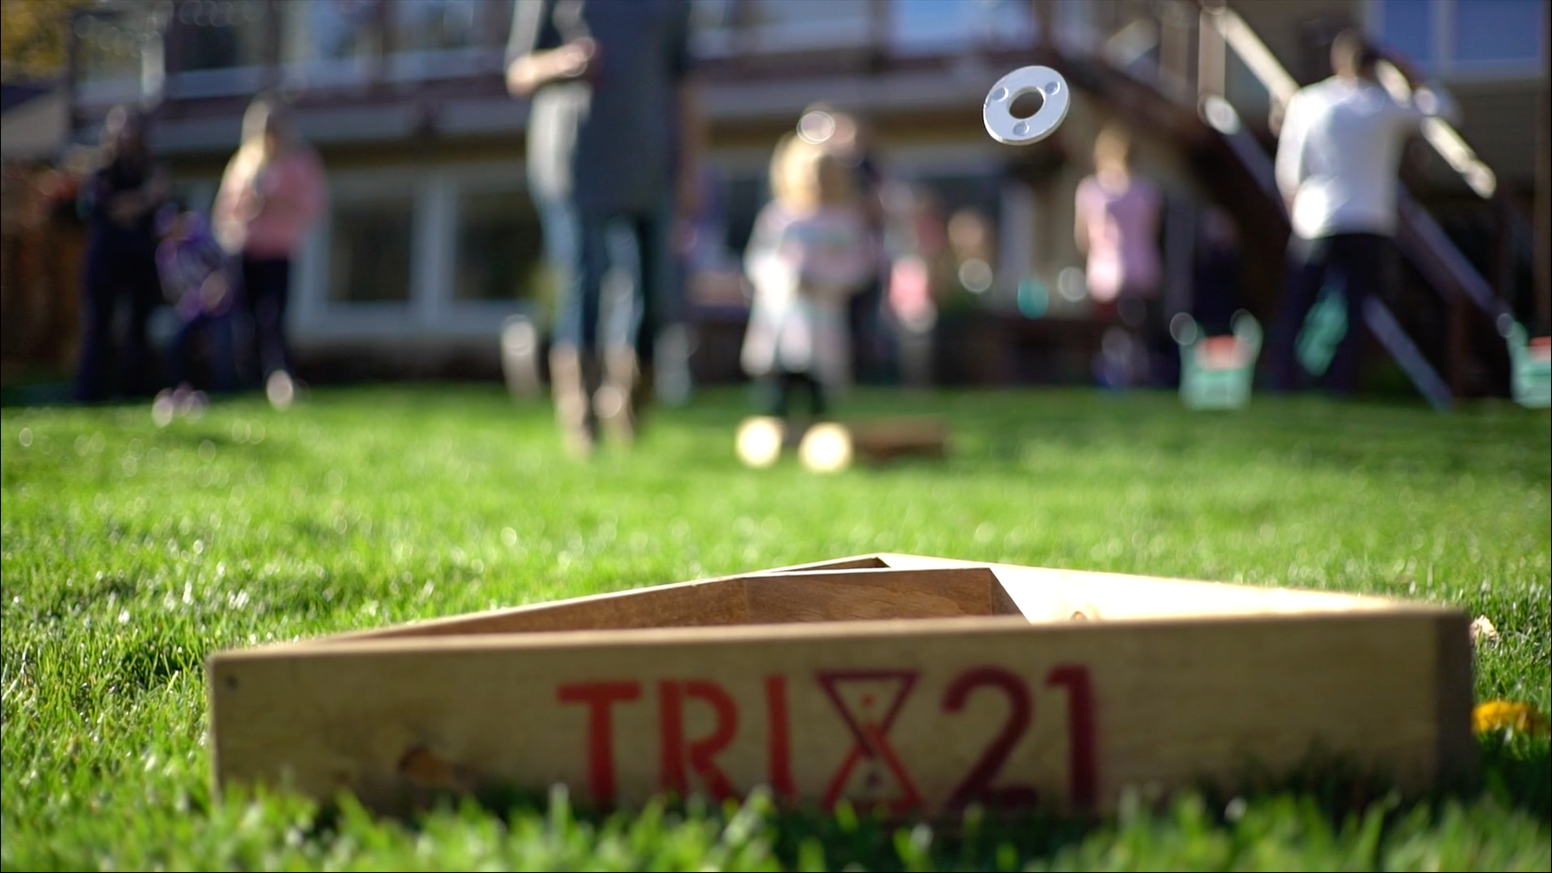 Tri 21: The Latest lawn game bringing family, friends and the outdoors together—healthy relationships built from quality time together.